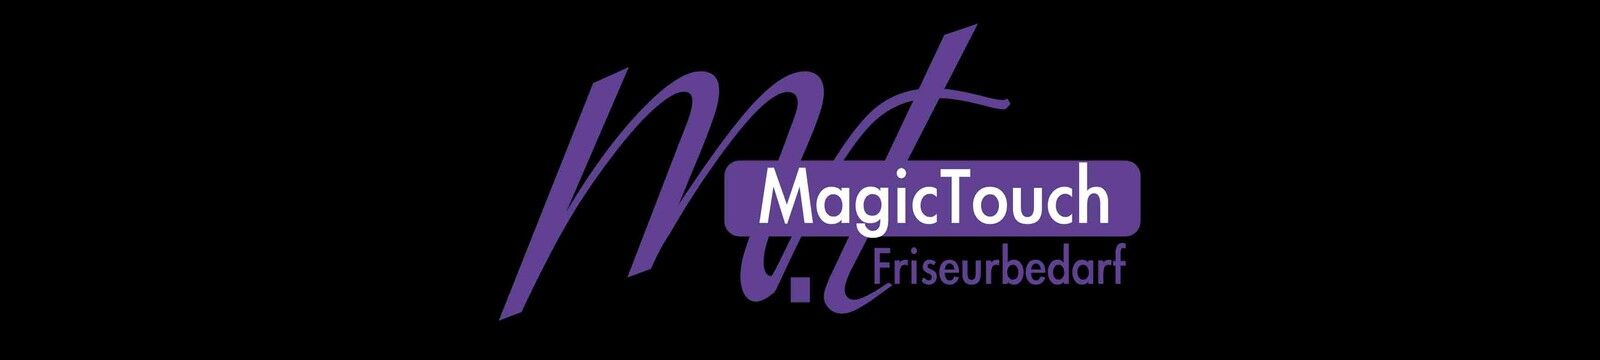 Magic Touch 24